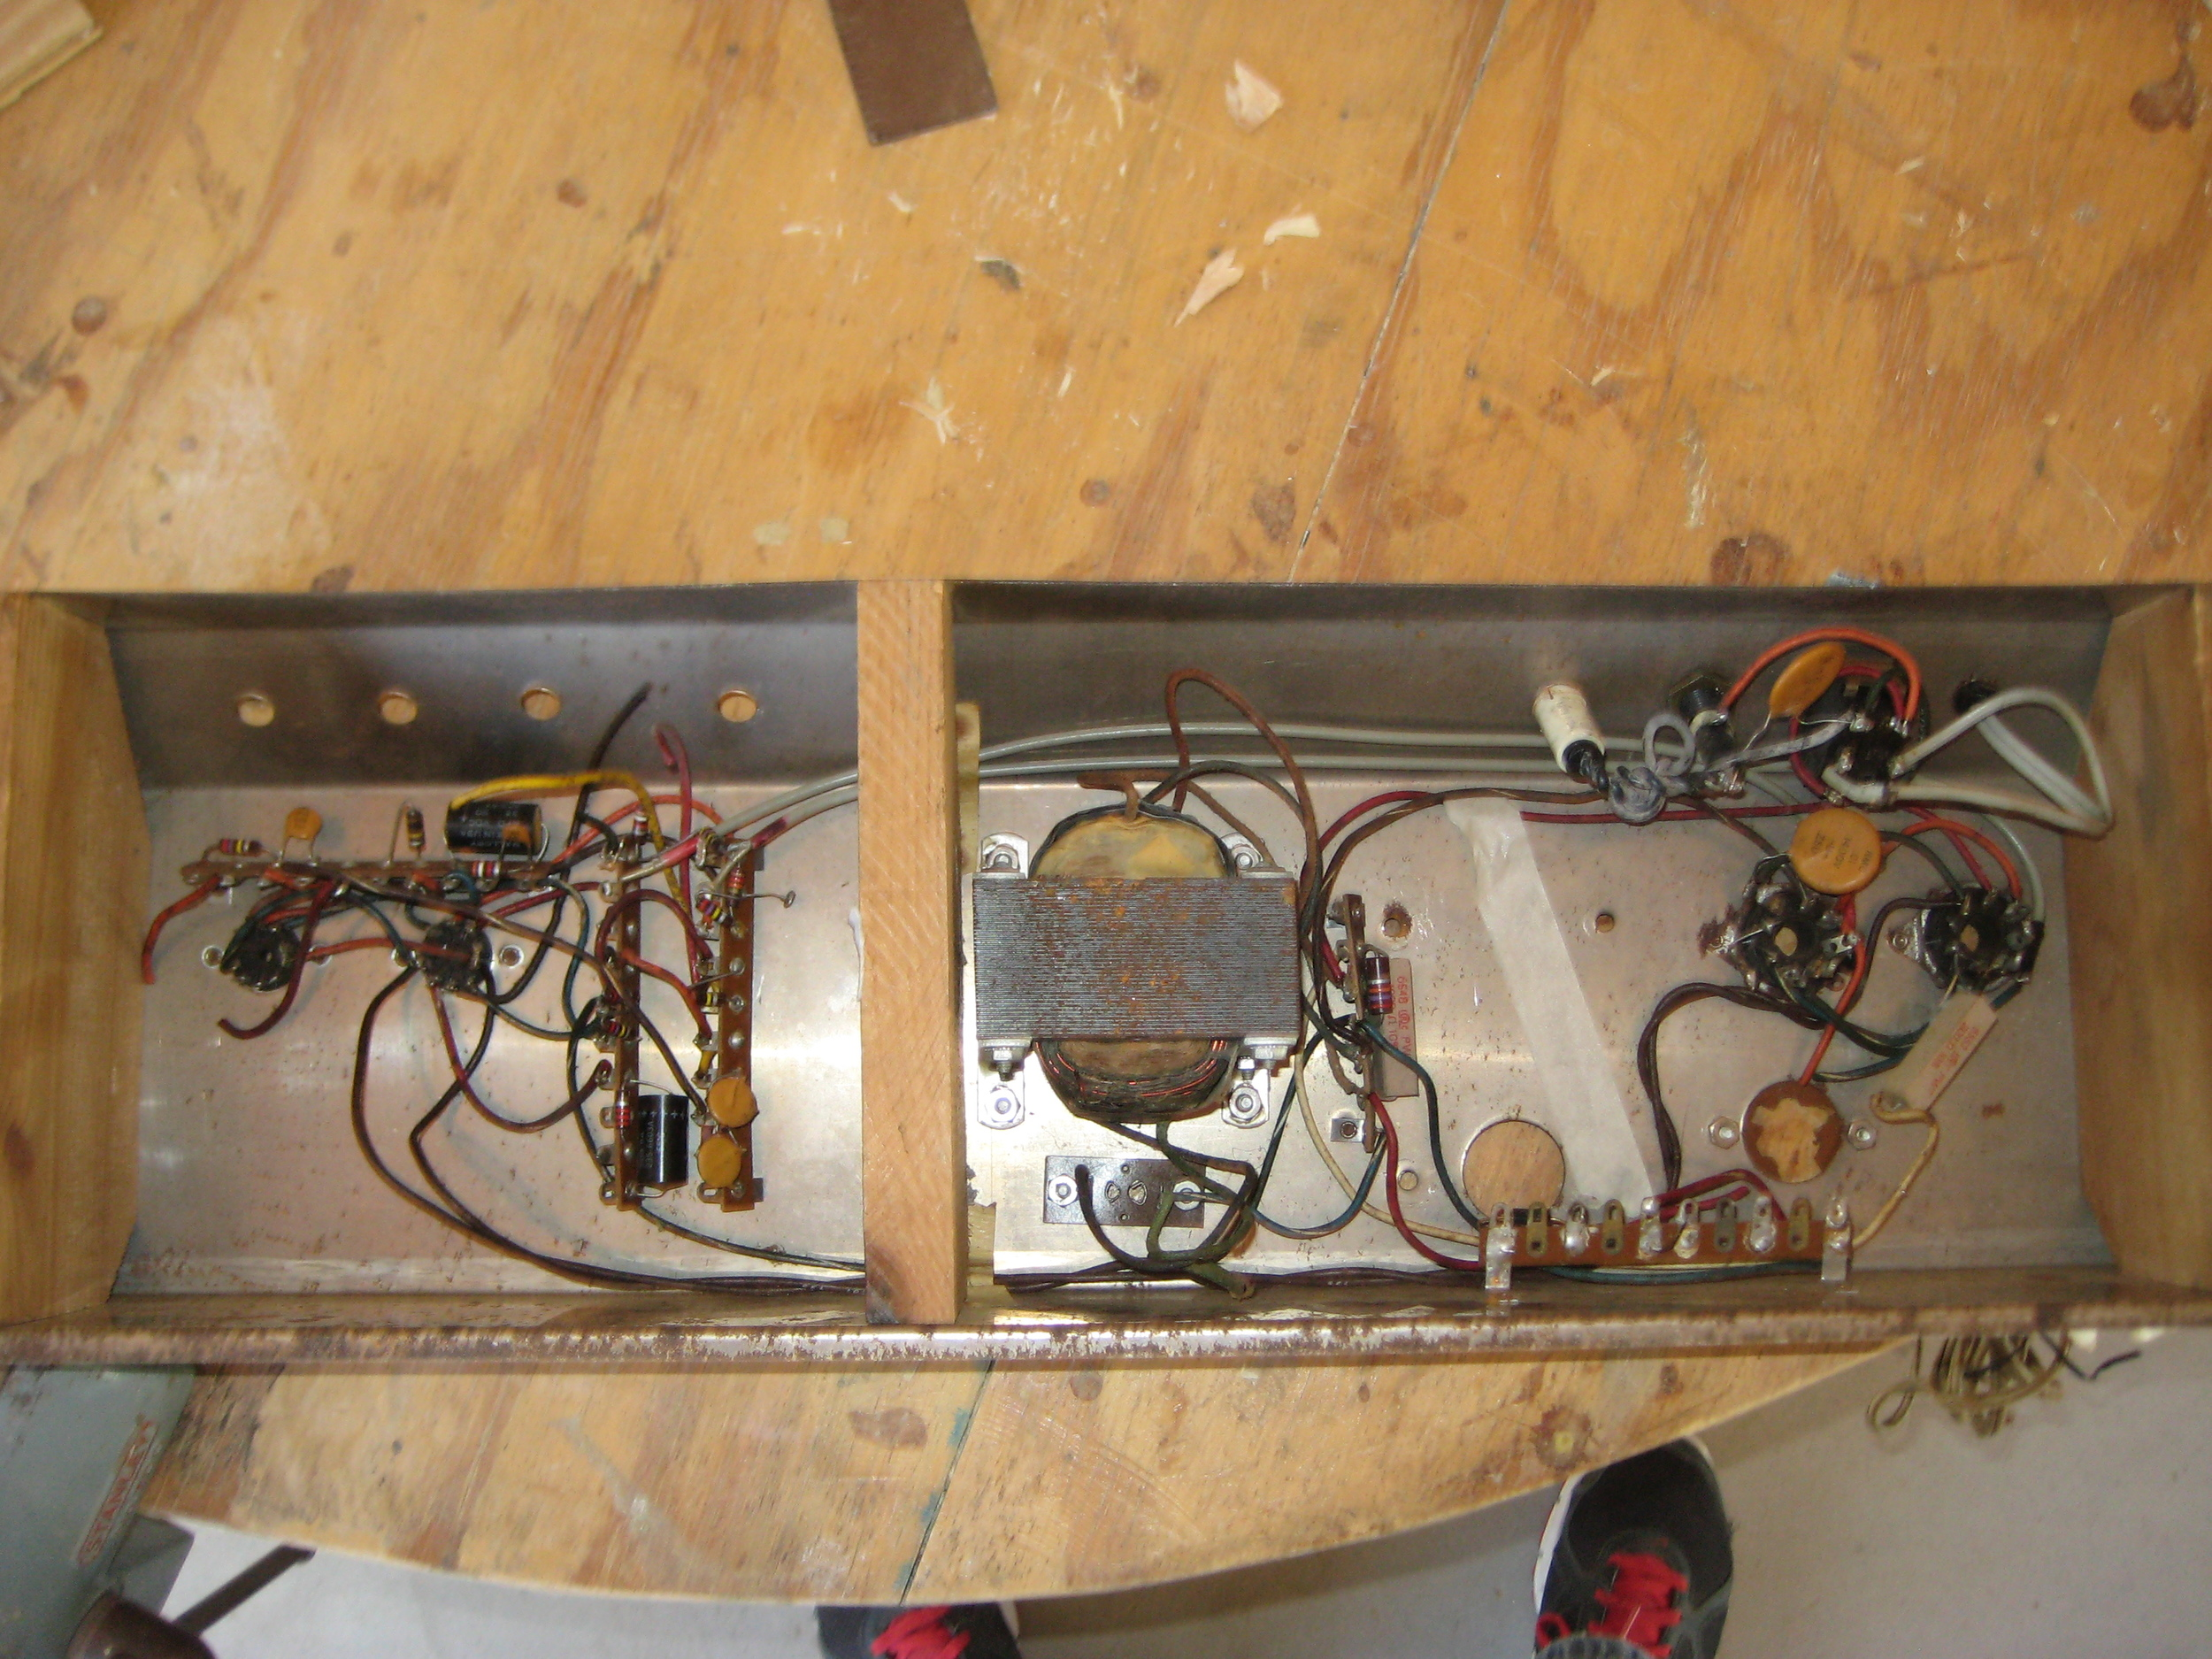 Inside of a non-working Supro Thunderbolt!